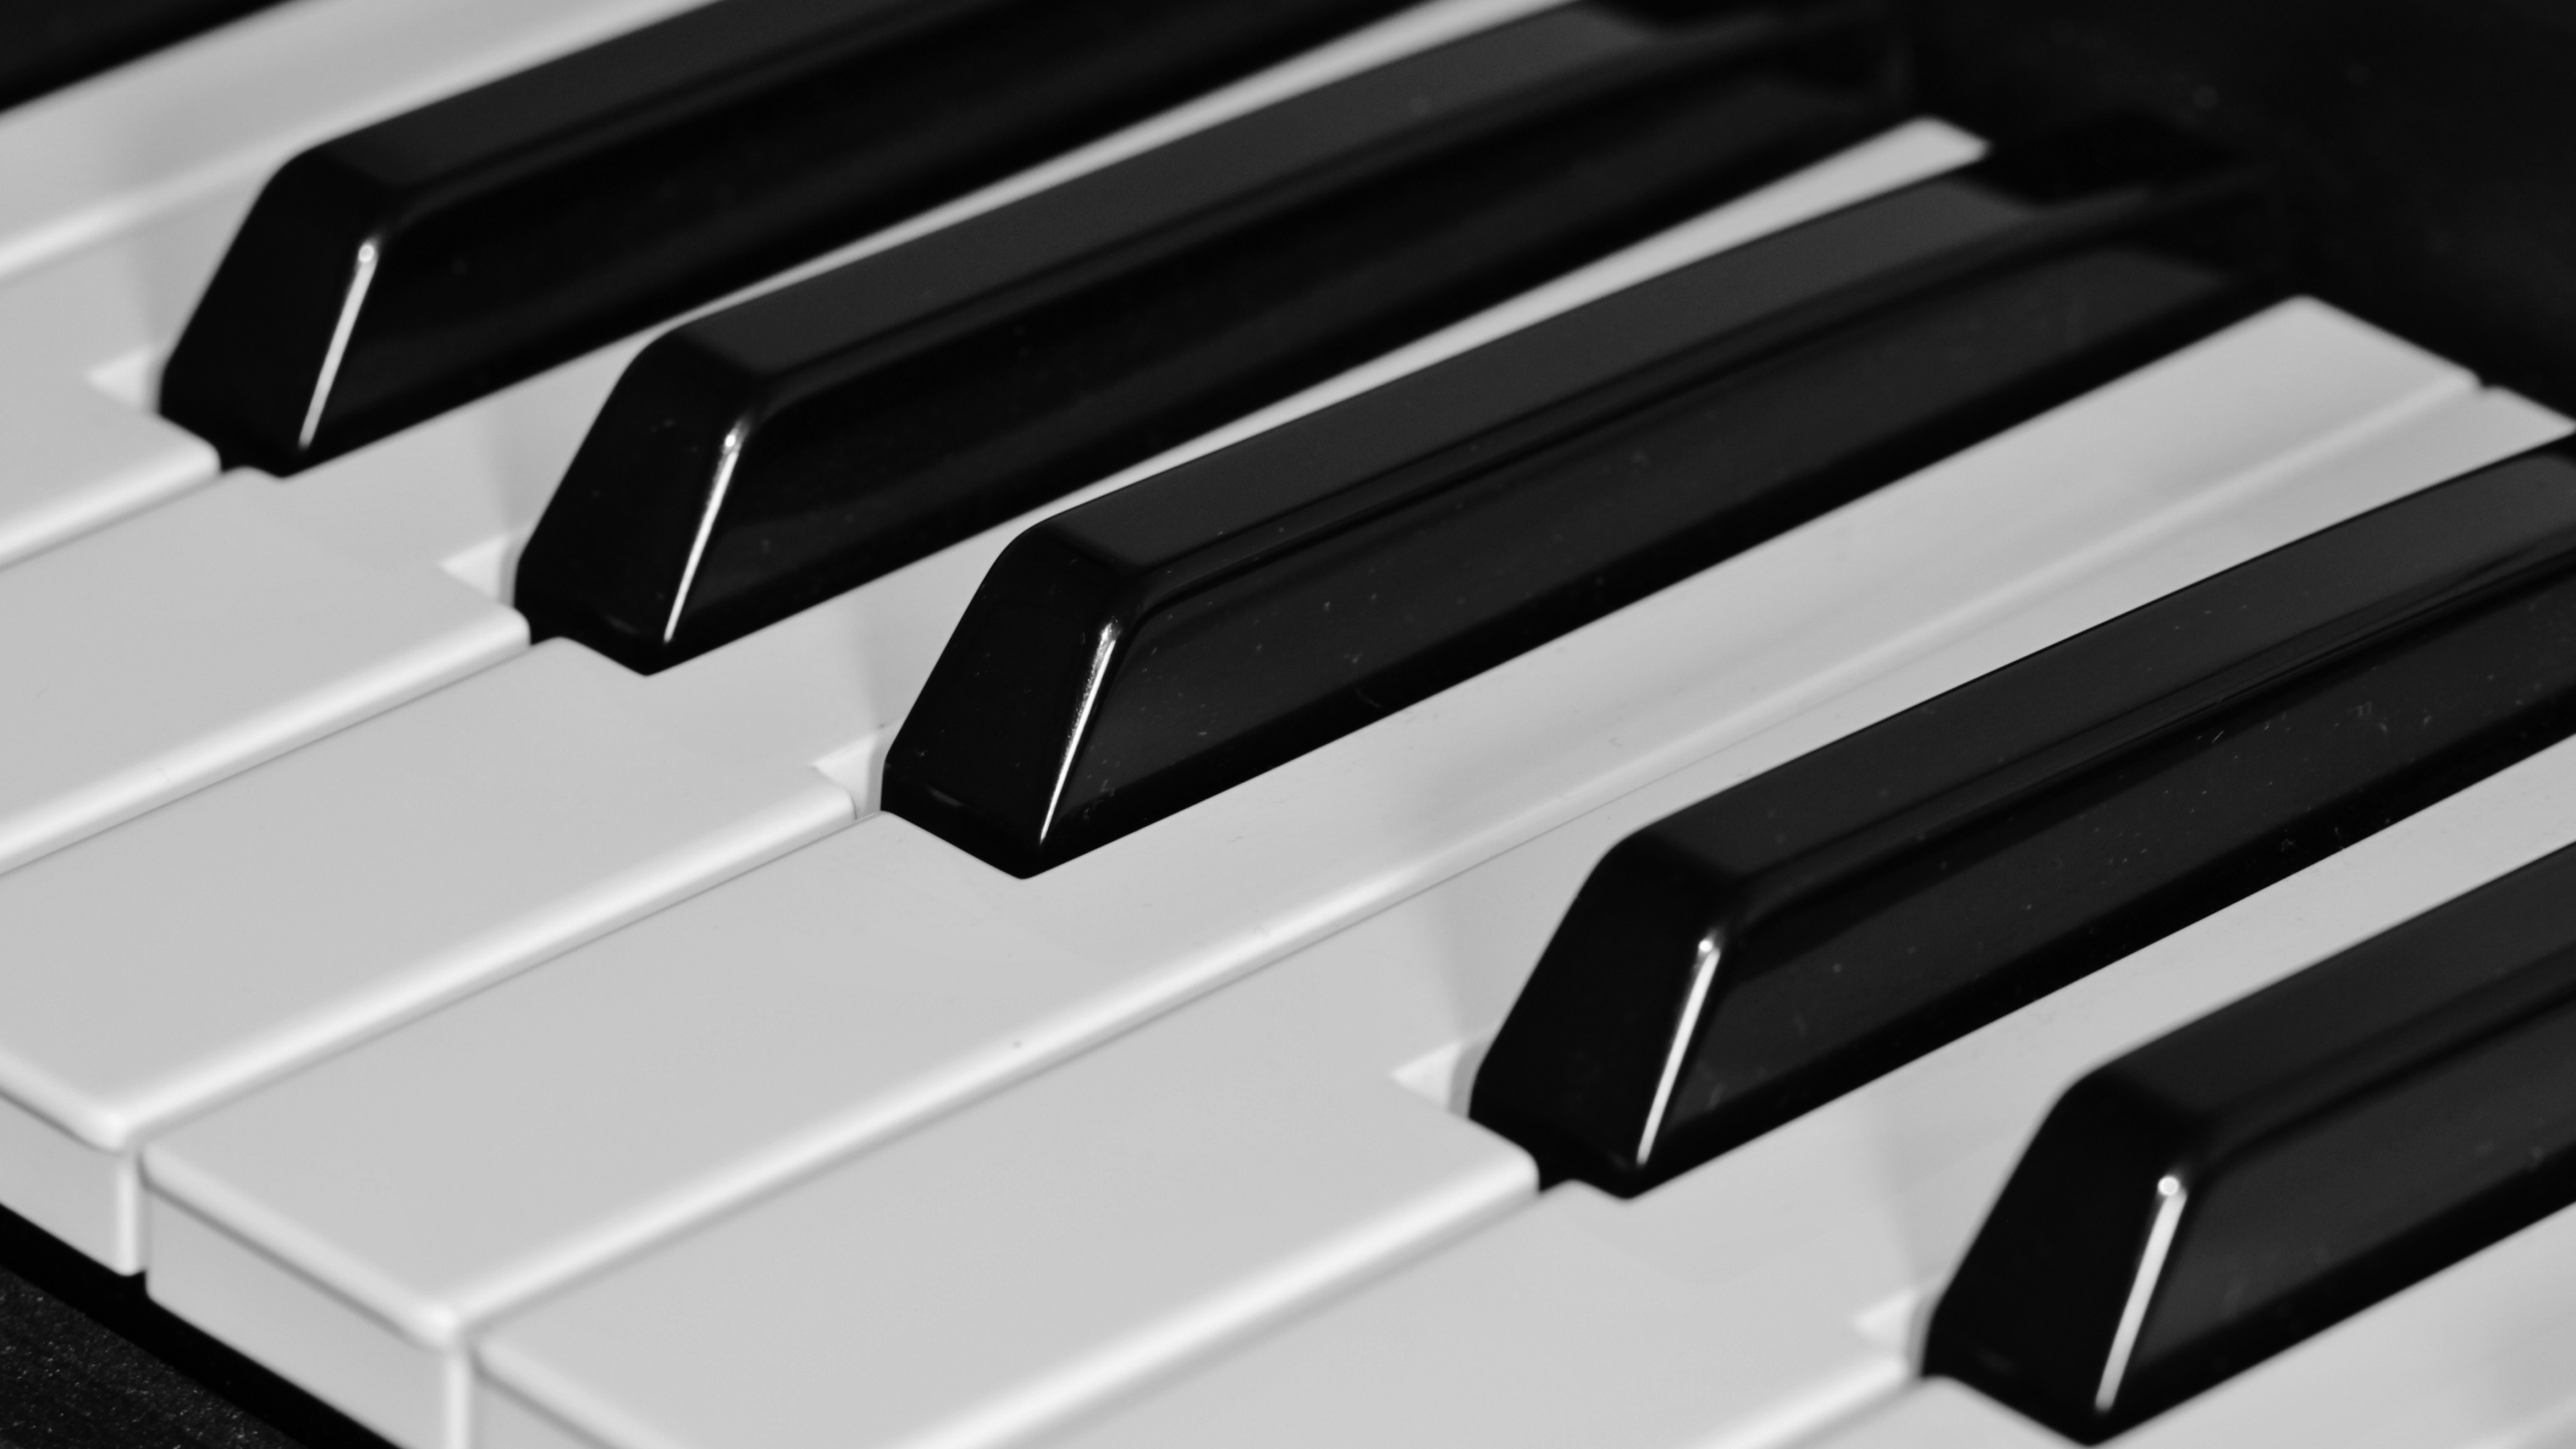 Piano Keys Hd Music 4k Wallpapers Images Backgrounds Photos And